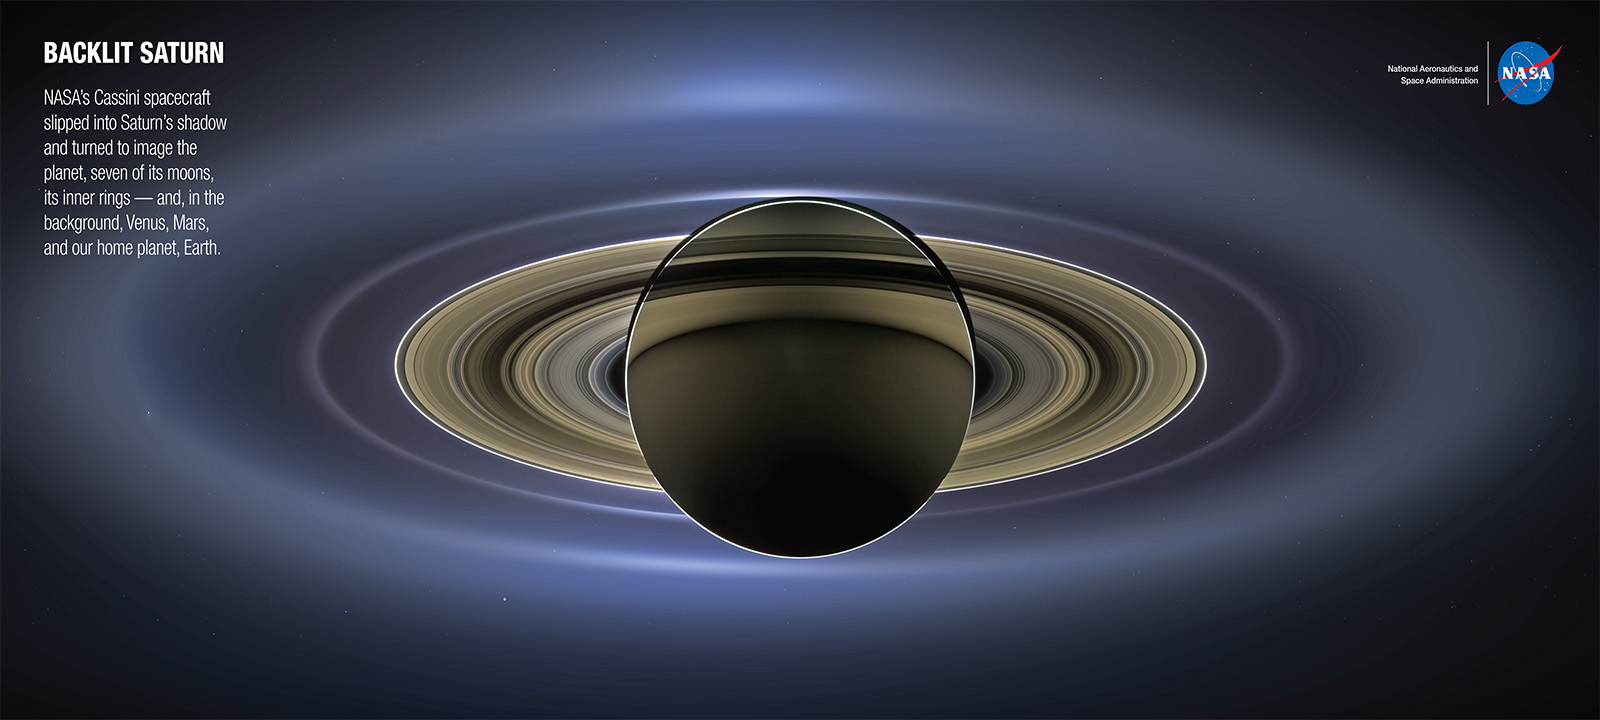 Saturn Backdrop | NASA Solar System Exploration View Of The Sun From Saturn